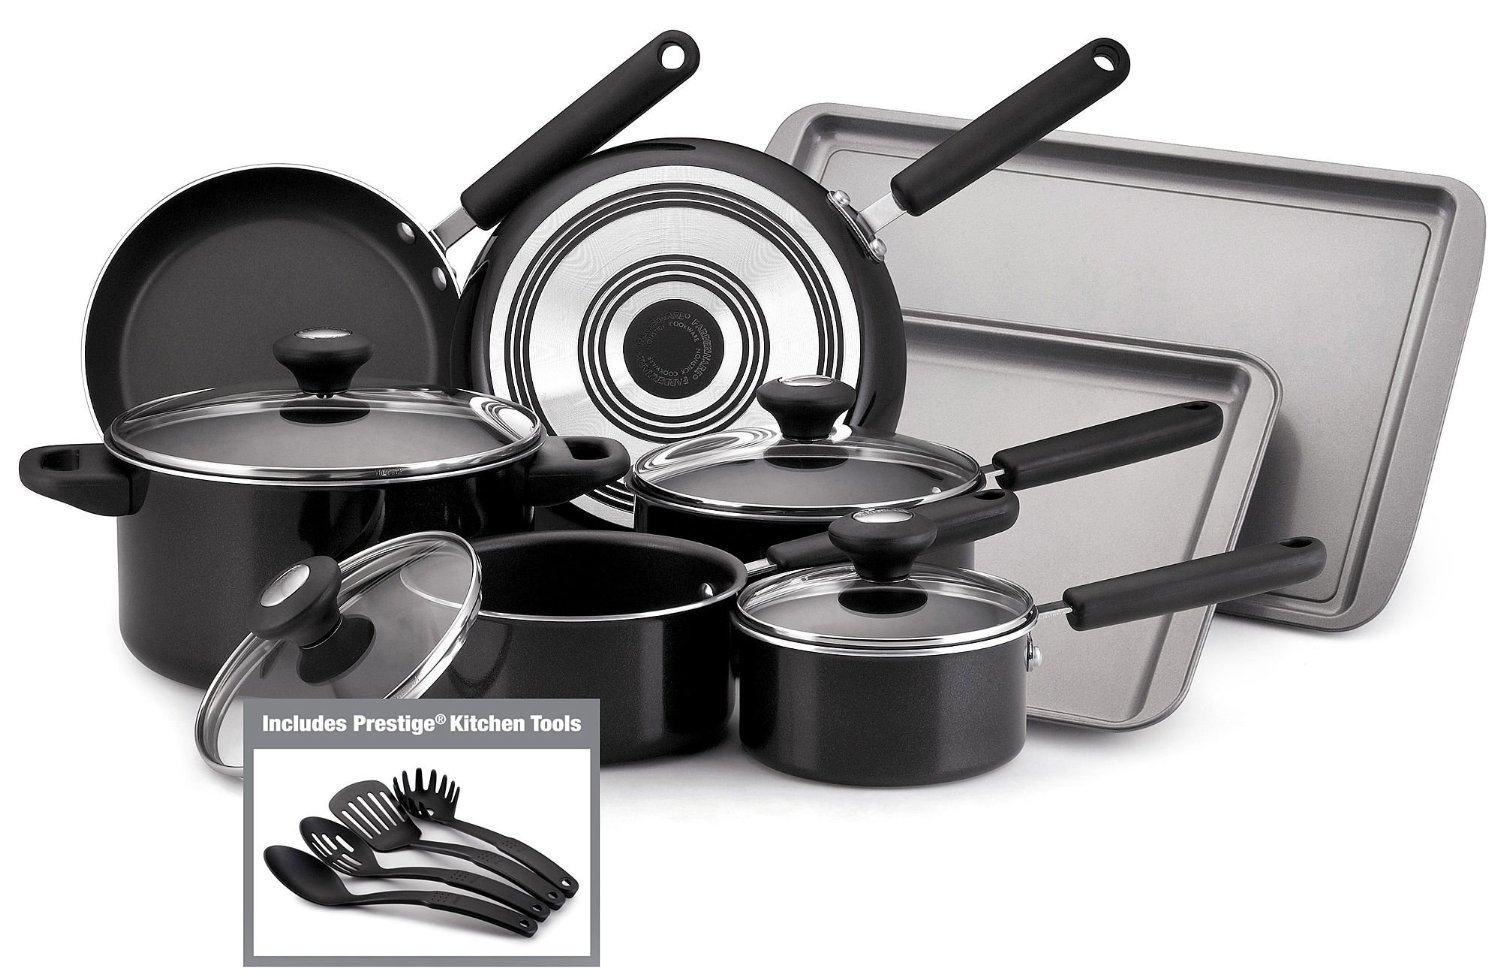 Farberware 12307 14 Piece Kitchen Nonstick Cookware Set